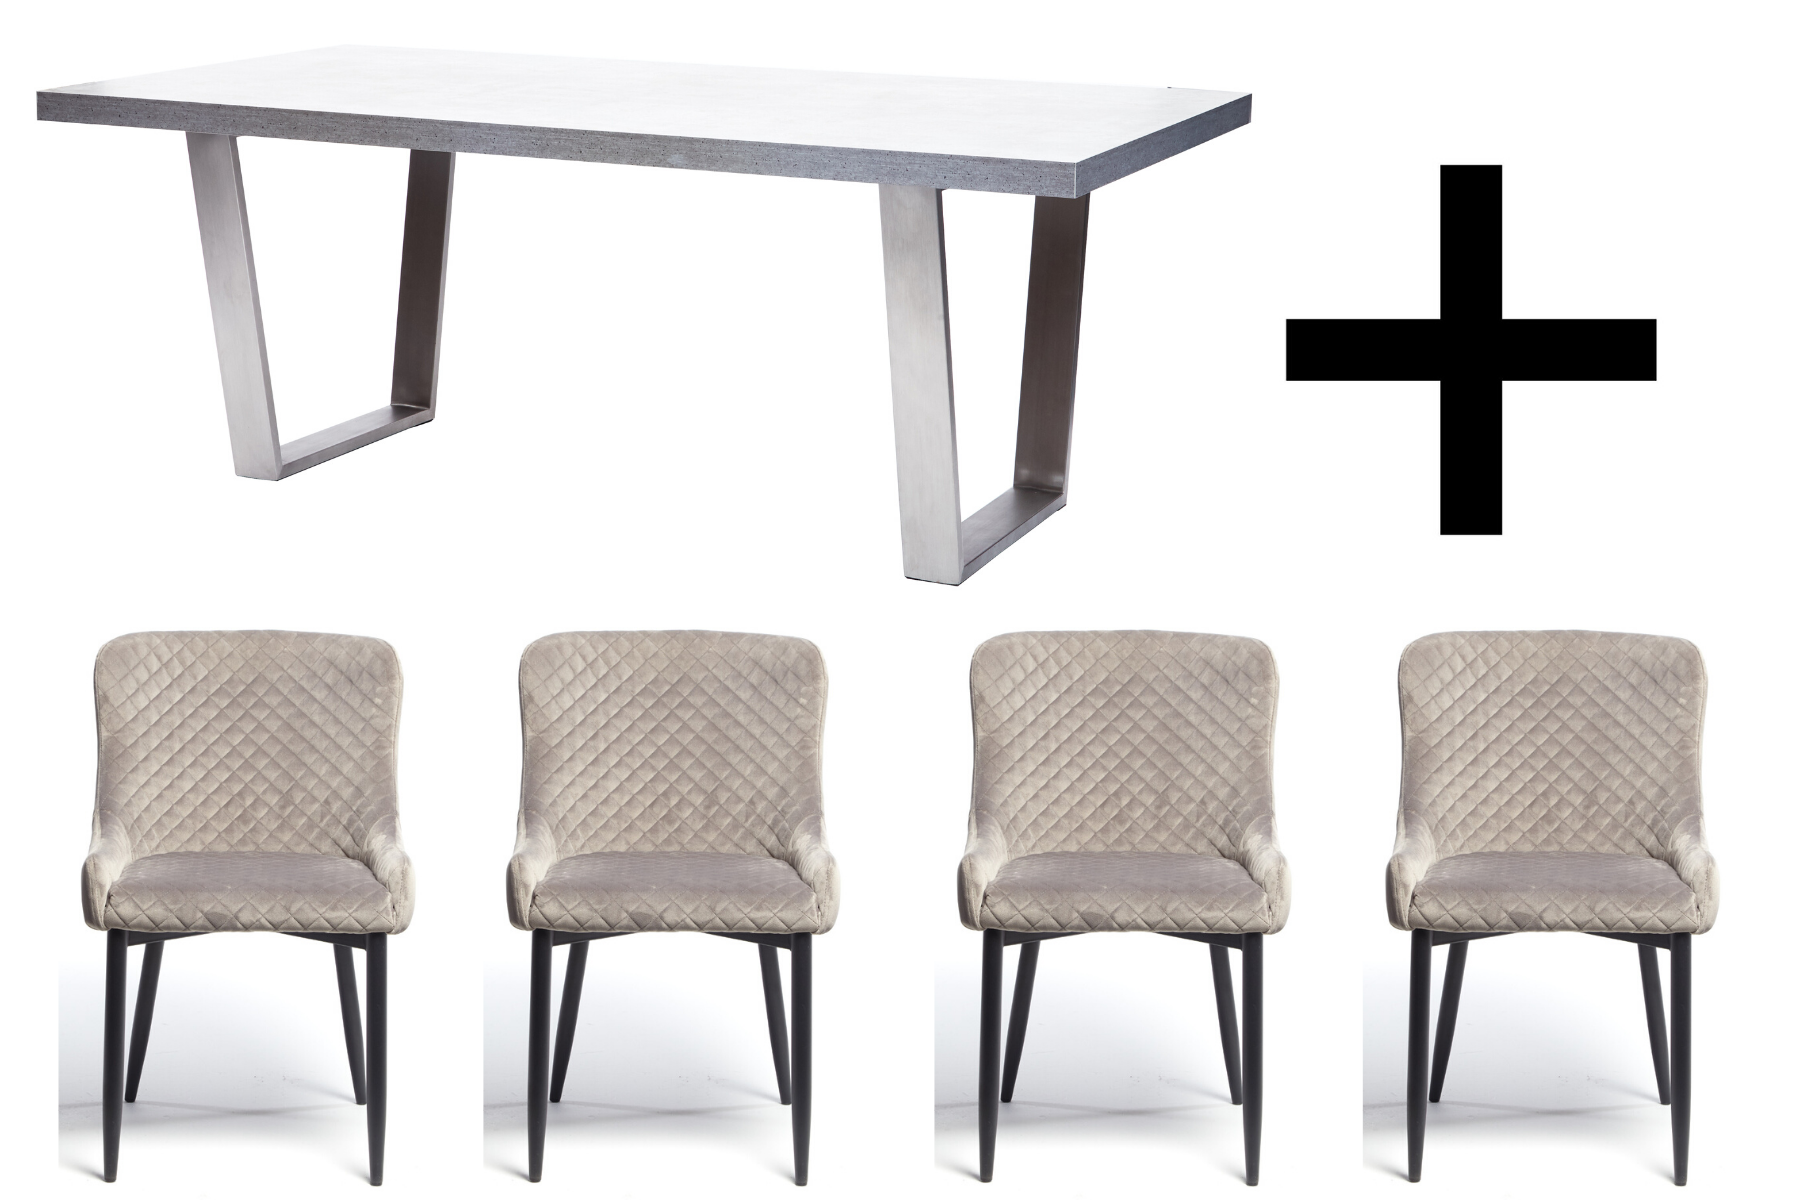 Hornby 200cm Dining Table and 4 Grey Velvet Maxwell Dining Chairs - Bundle Deal